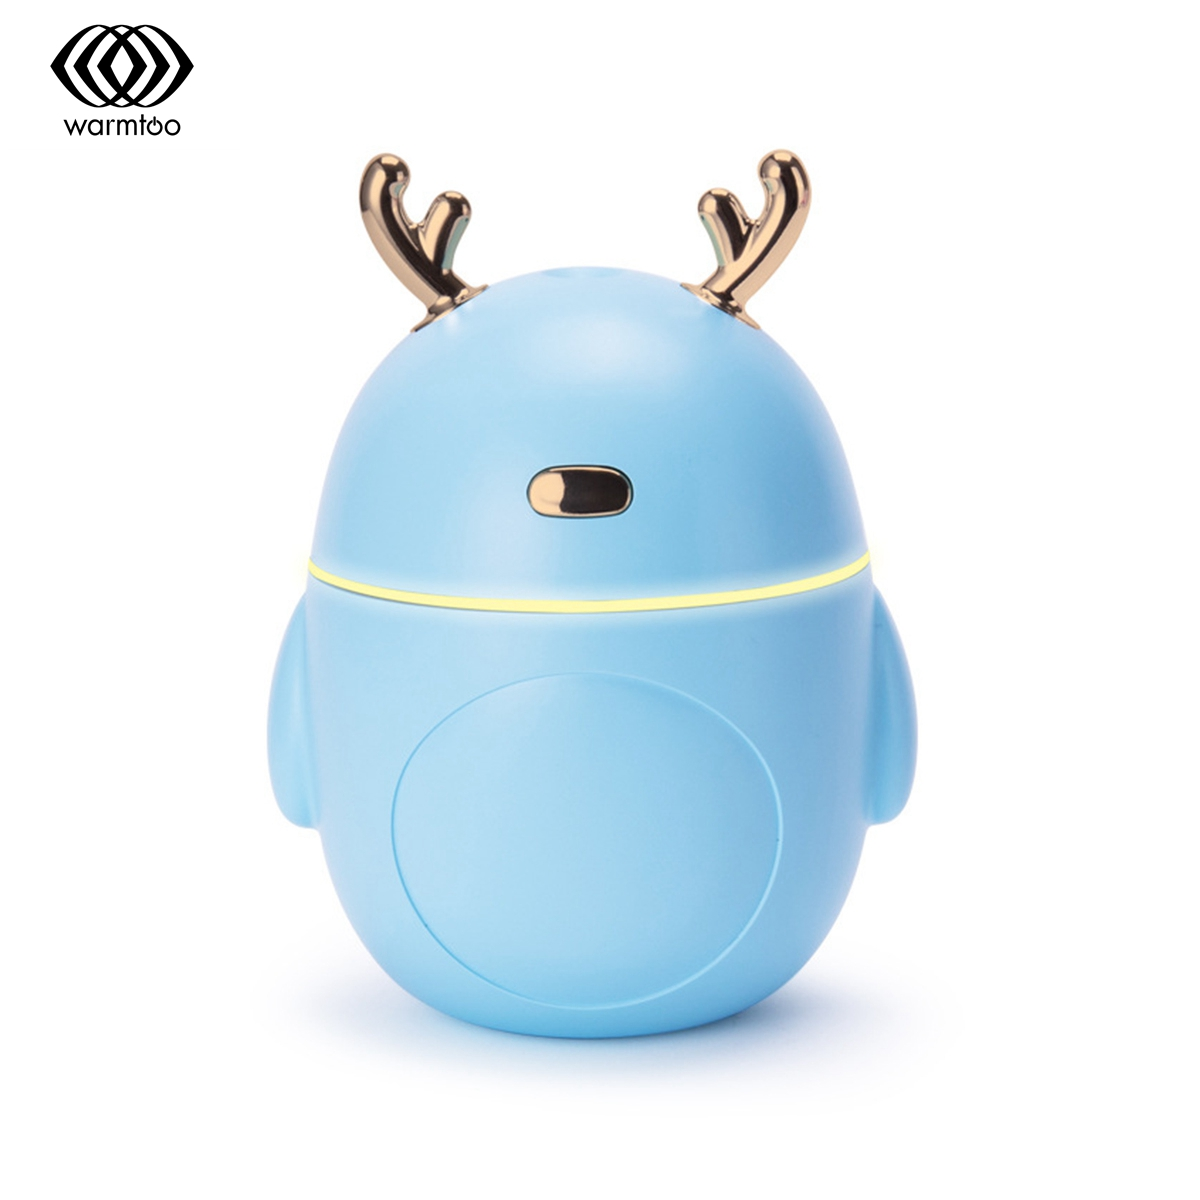 Warmtoo Mini Air Humidifier For Home Car USB Bottle Aroma Diffuser LED Backlight Office Mist Maker Refresher Humidification